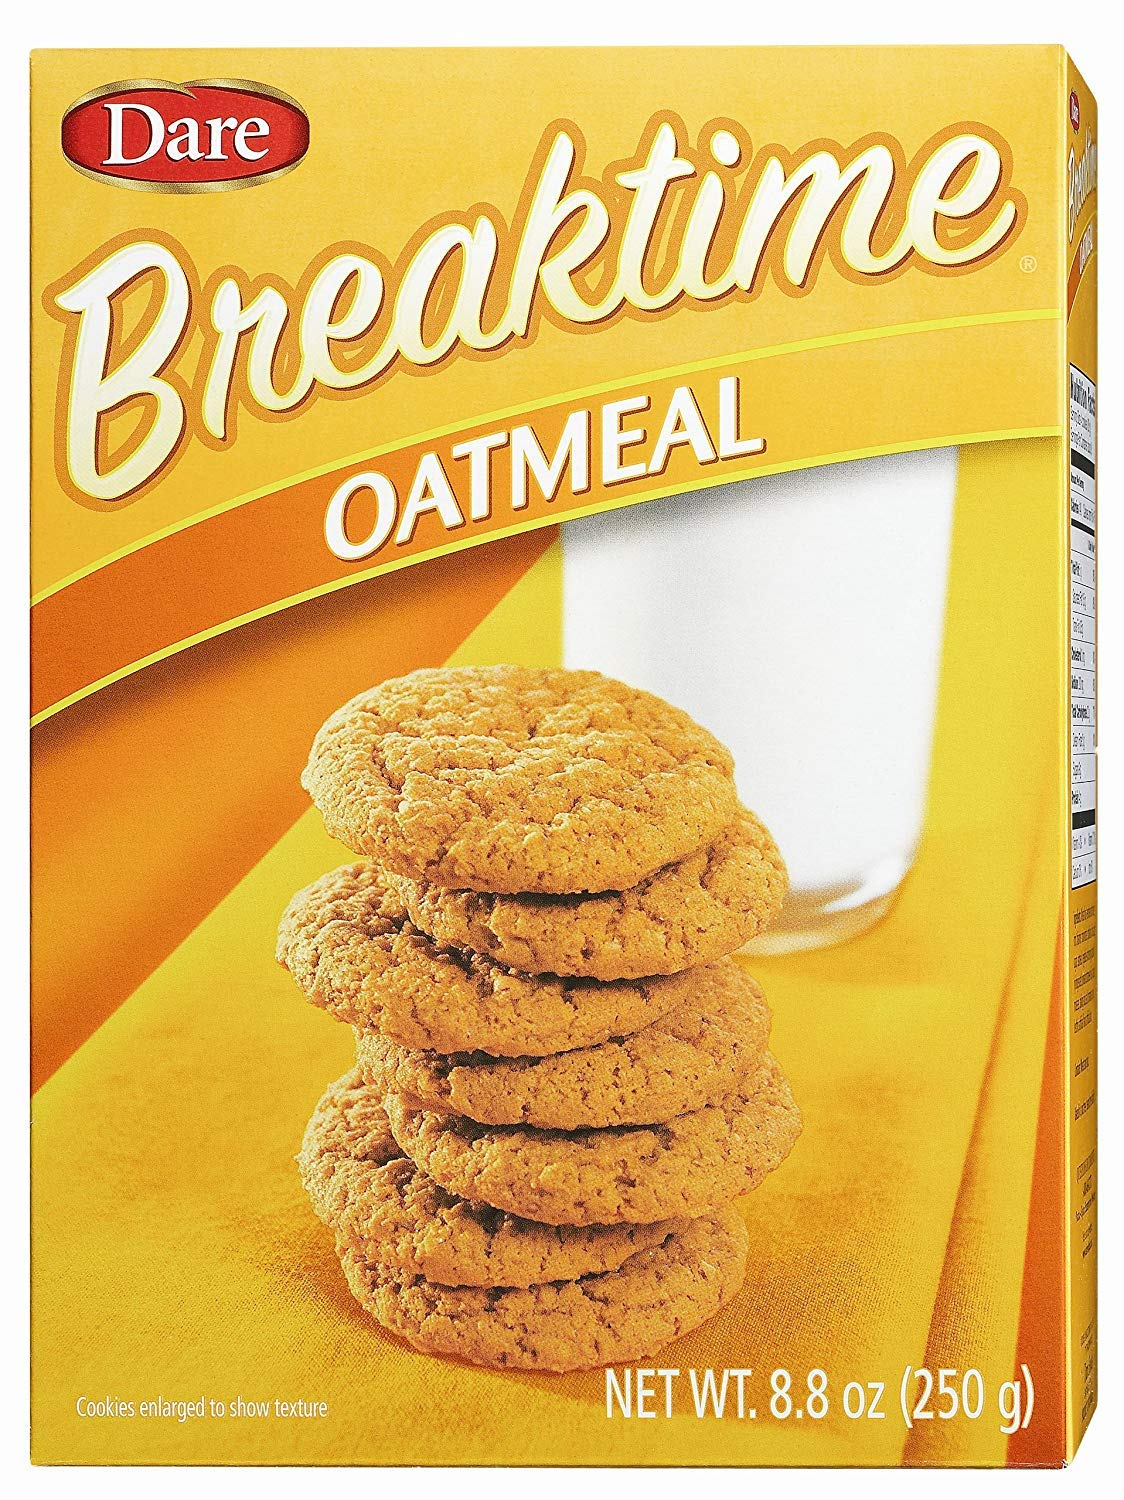 Dare Foods Breaktime Oatmeal Cookies – Taste of Crispy Rolled Oats in a Crunchy Oatmeal Cookie – Delicious Snack, Dessert and More - No Cholesterol, Peanut Free – 8.8 oz. (Pack of 12)